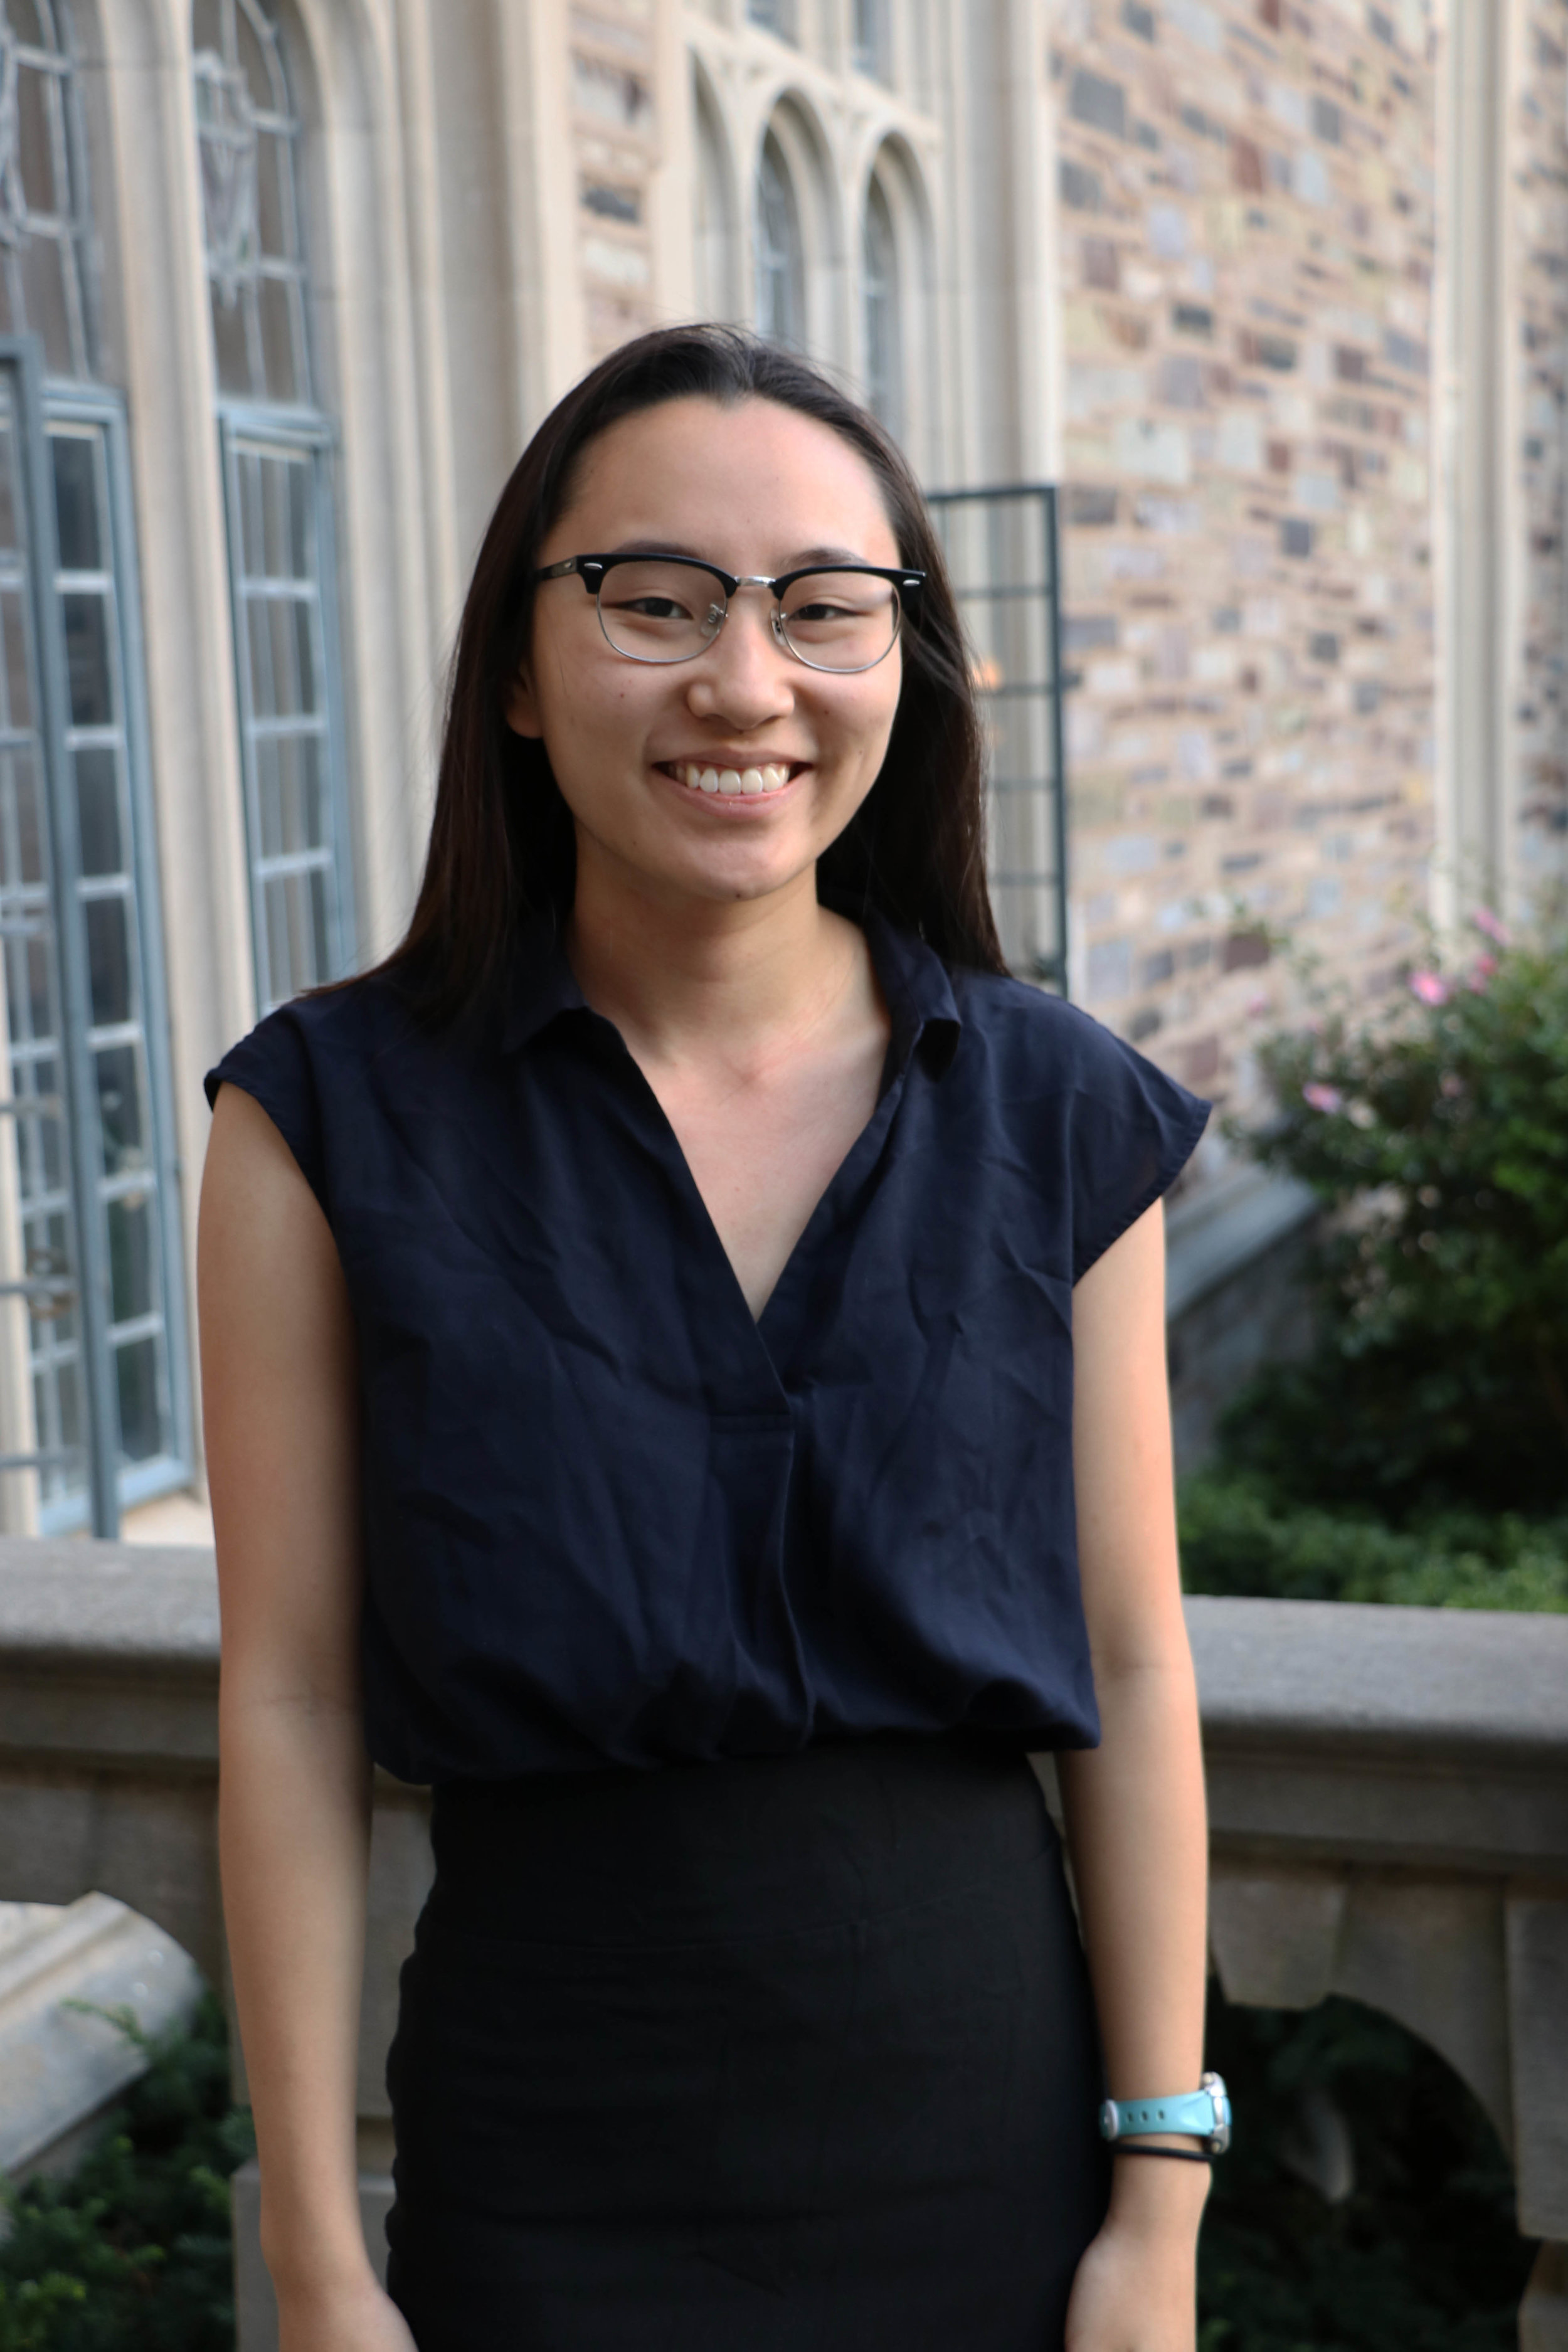 GRACE XU   Grace is a freshman interested in majoring in Economics, Politics, or the Woodrow Wilson School with certificates in History and the Practice of Diplomacy or American Studies. She is particularly interested in the current climate of US-China Relations, especially in terms of economics and politics. Beyond PUCC, Grace is involved on campus with the Princeton Debate Panel, Business Today, and Princeton University Nonprofit Consultants. She is also a member of the Asian American Students Association.